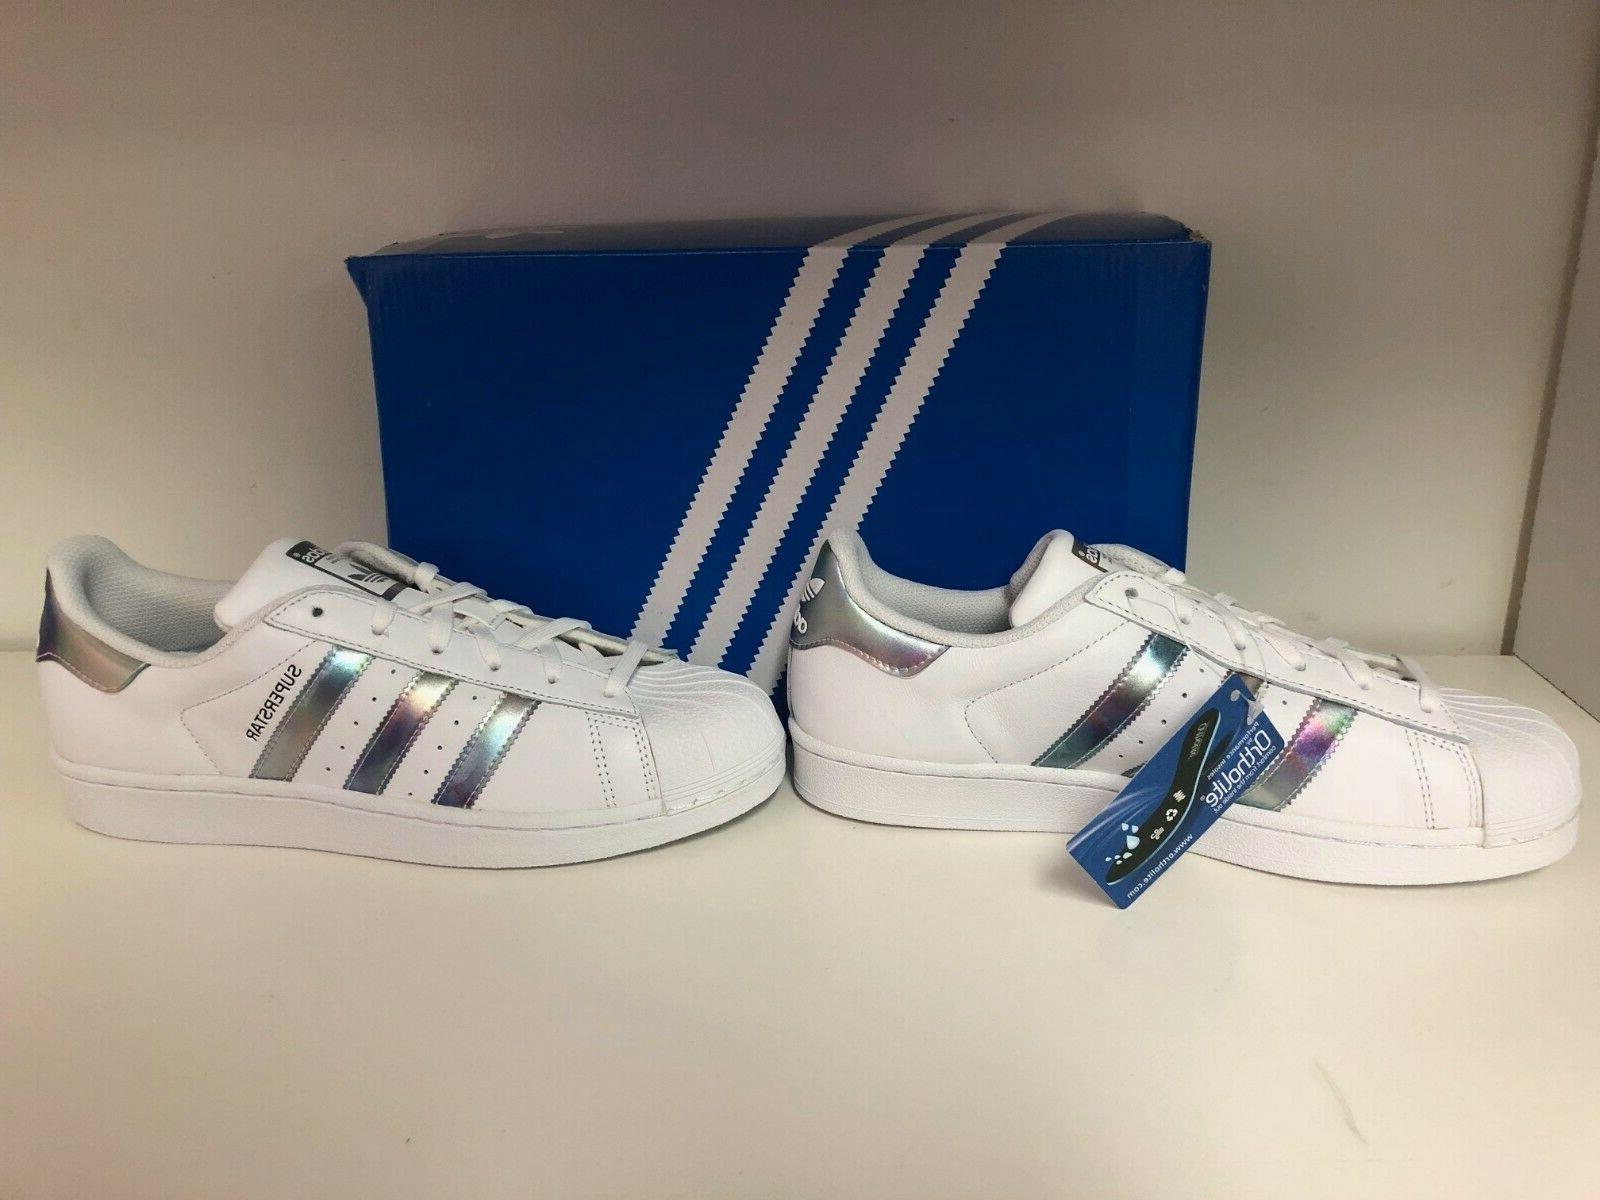 Adidas Shell Toe White/Metallic Kids Size 7 Shoes